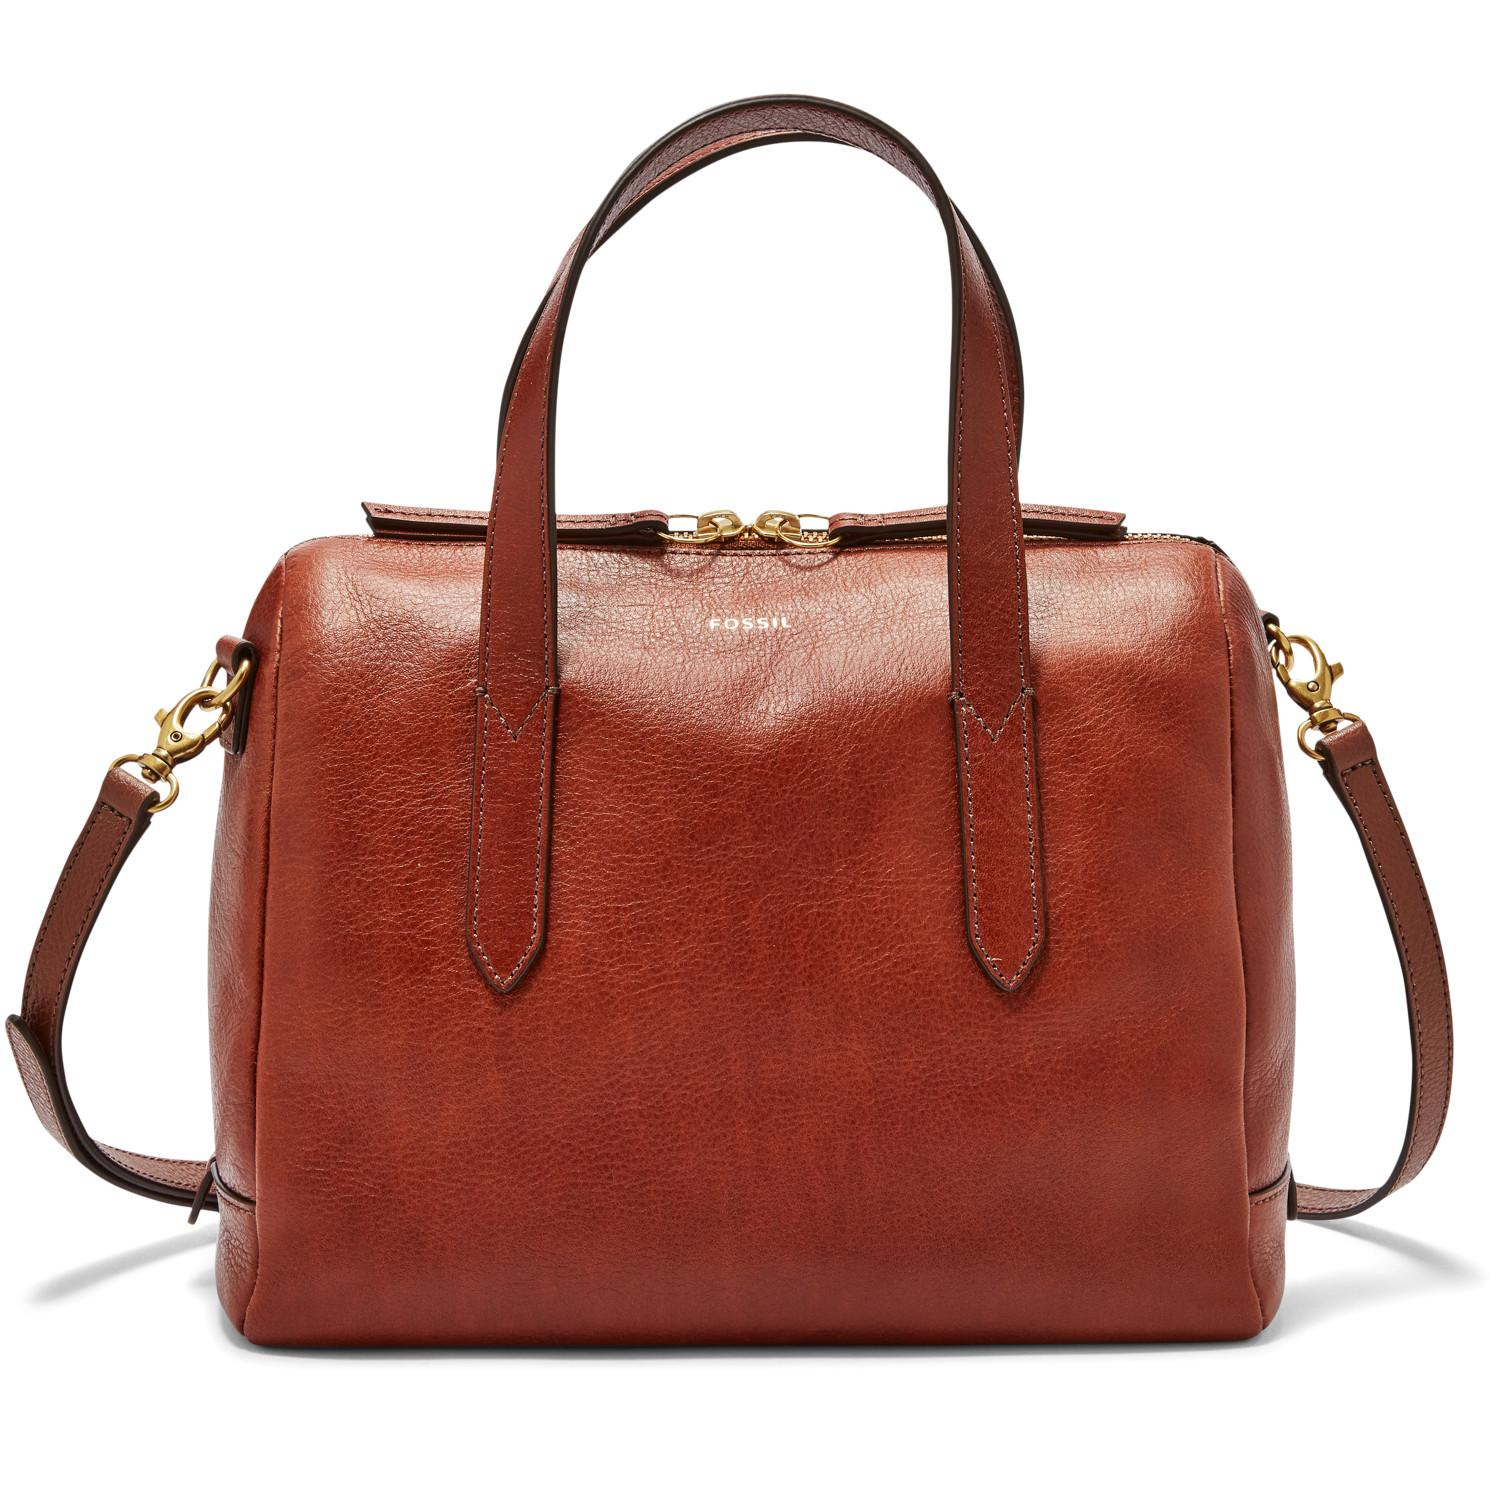 3bb629c14 Fossil Sydney Satchel – Medium Brown, SHB 1978210